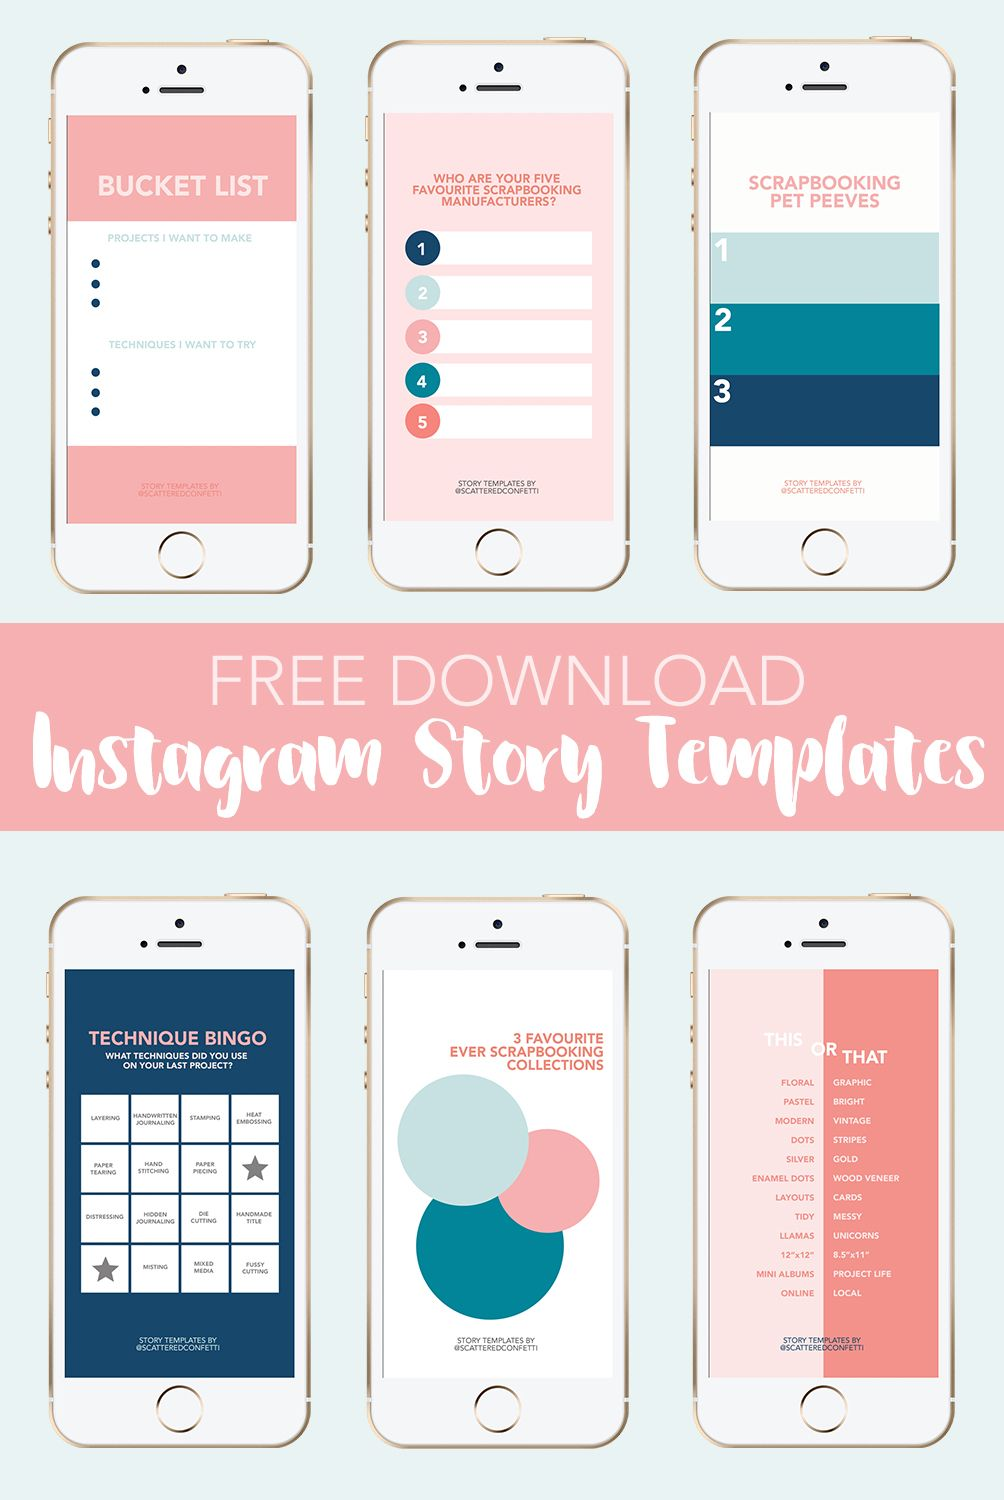 Free Download: Scrapbooking Related Instagram Story